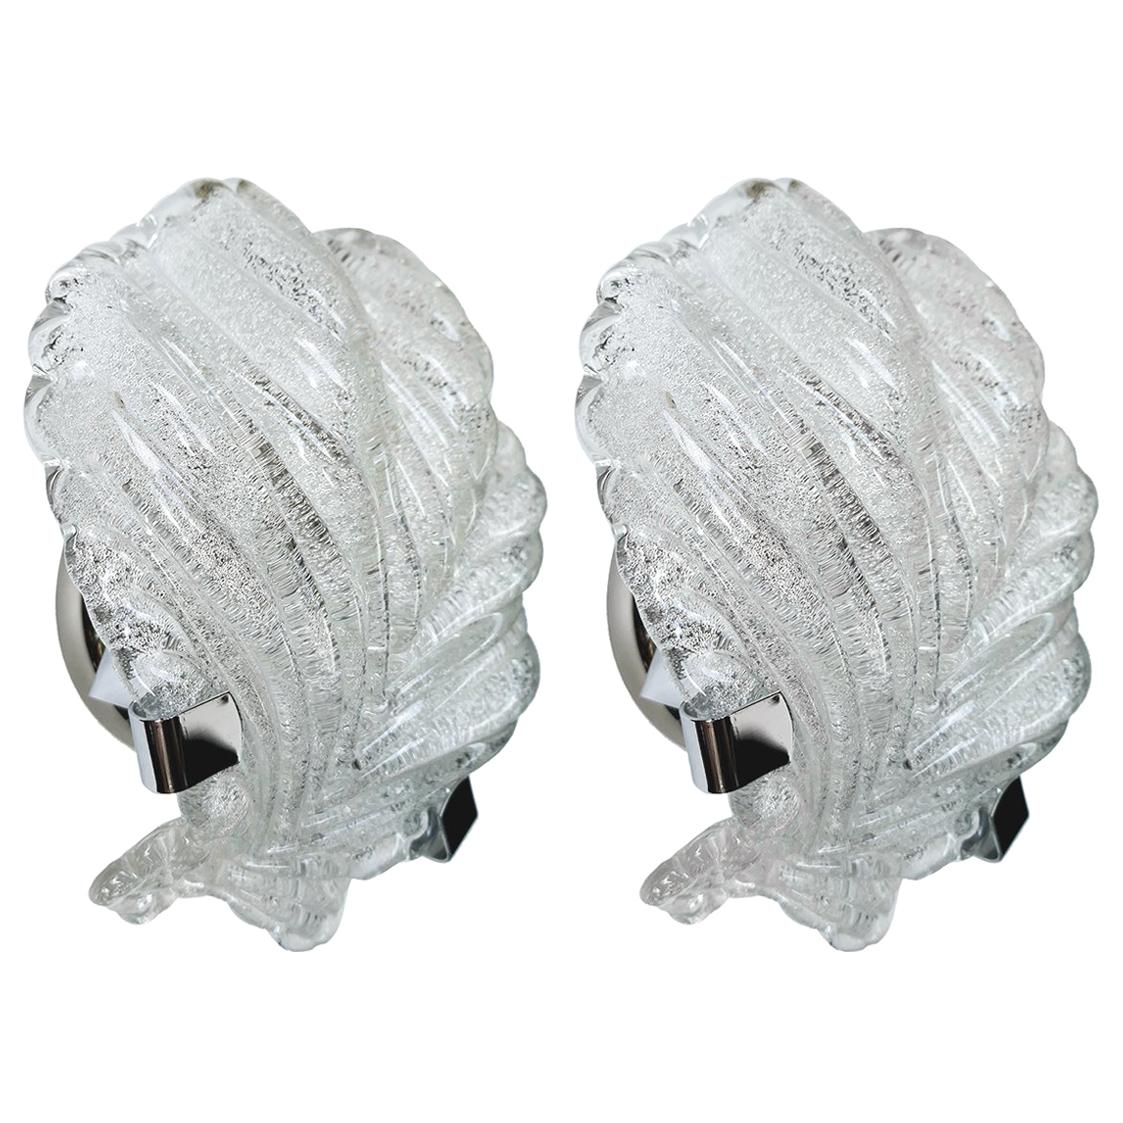 Pair of Murano Glass Palm Leaves Shell Wall Lights Sconces, Italy, 1960s